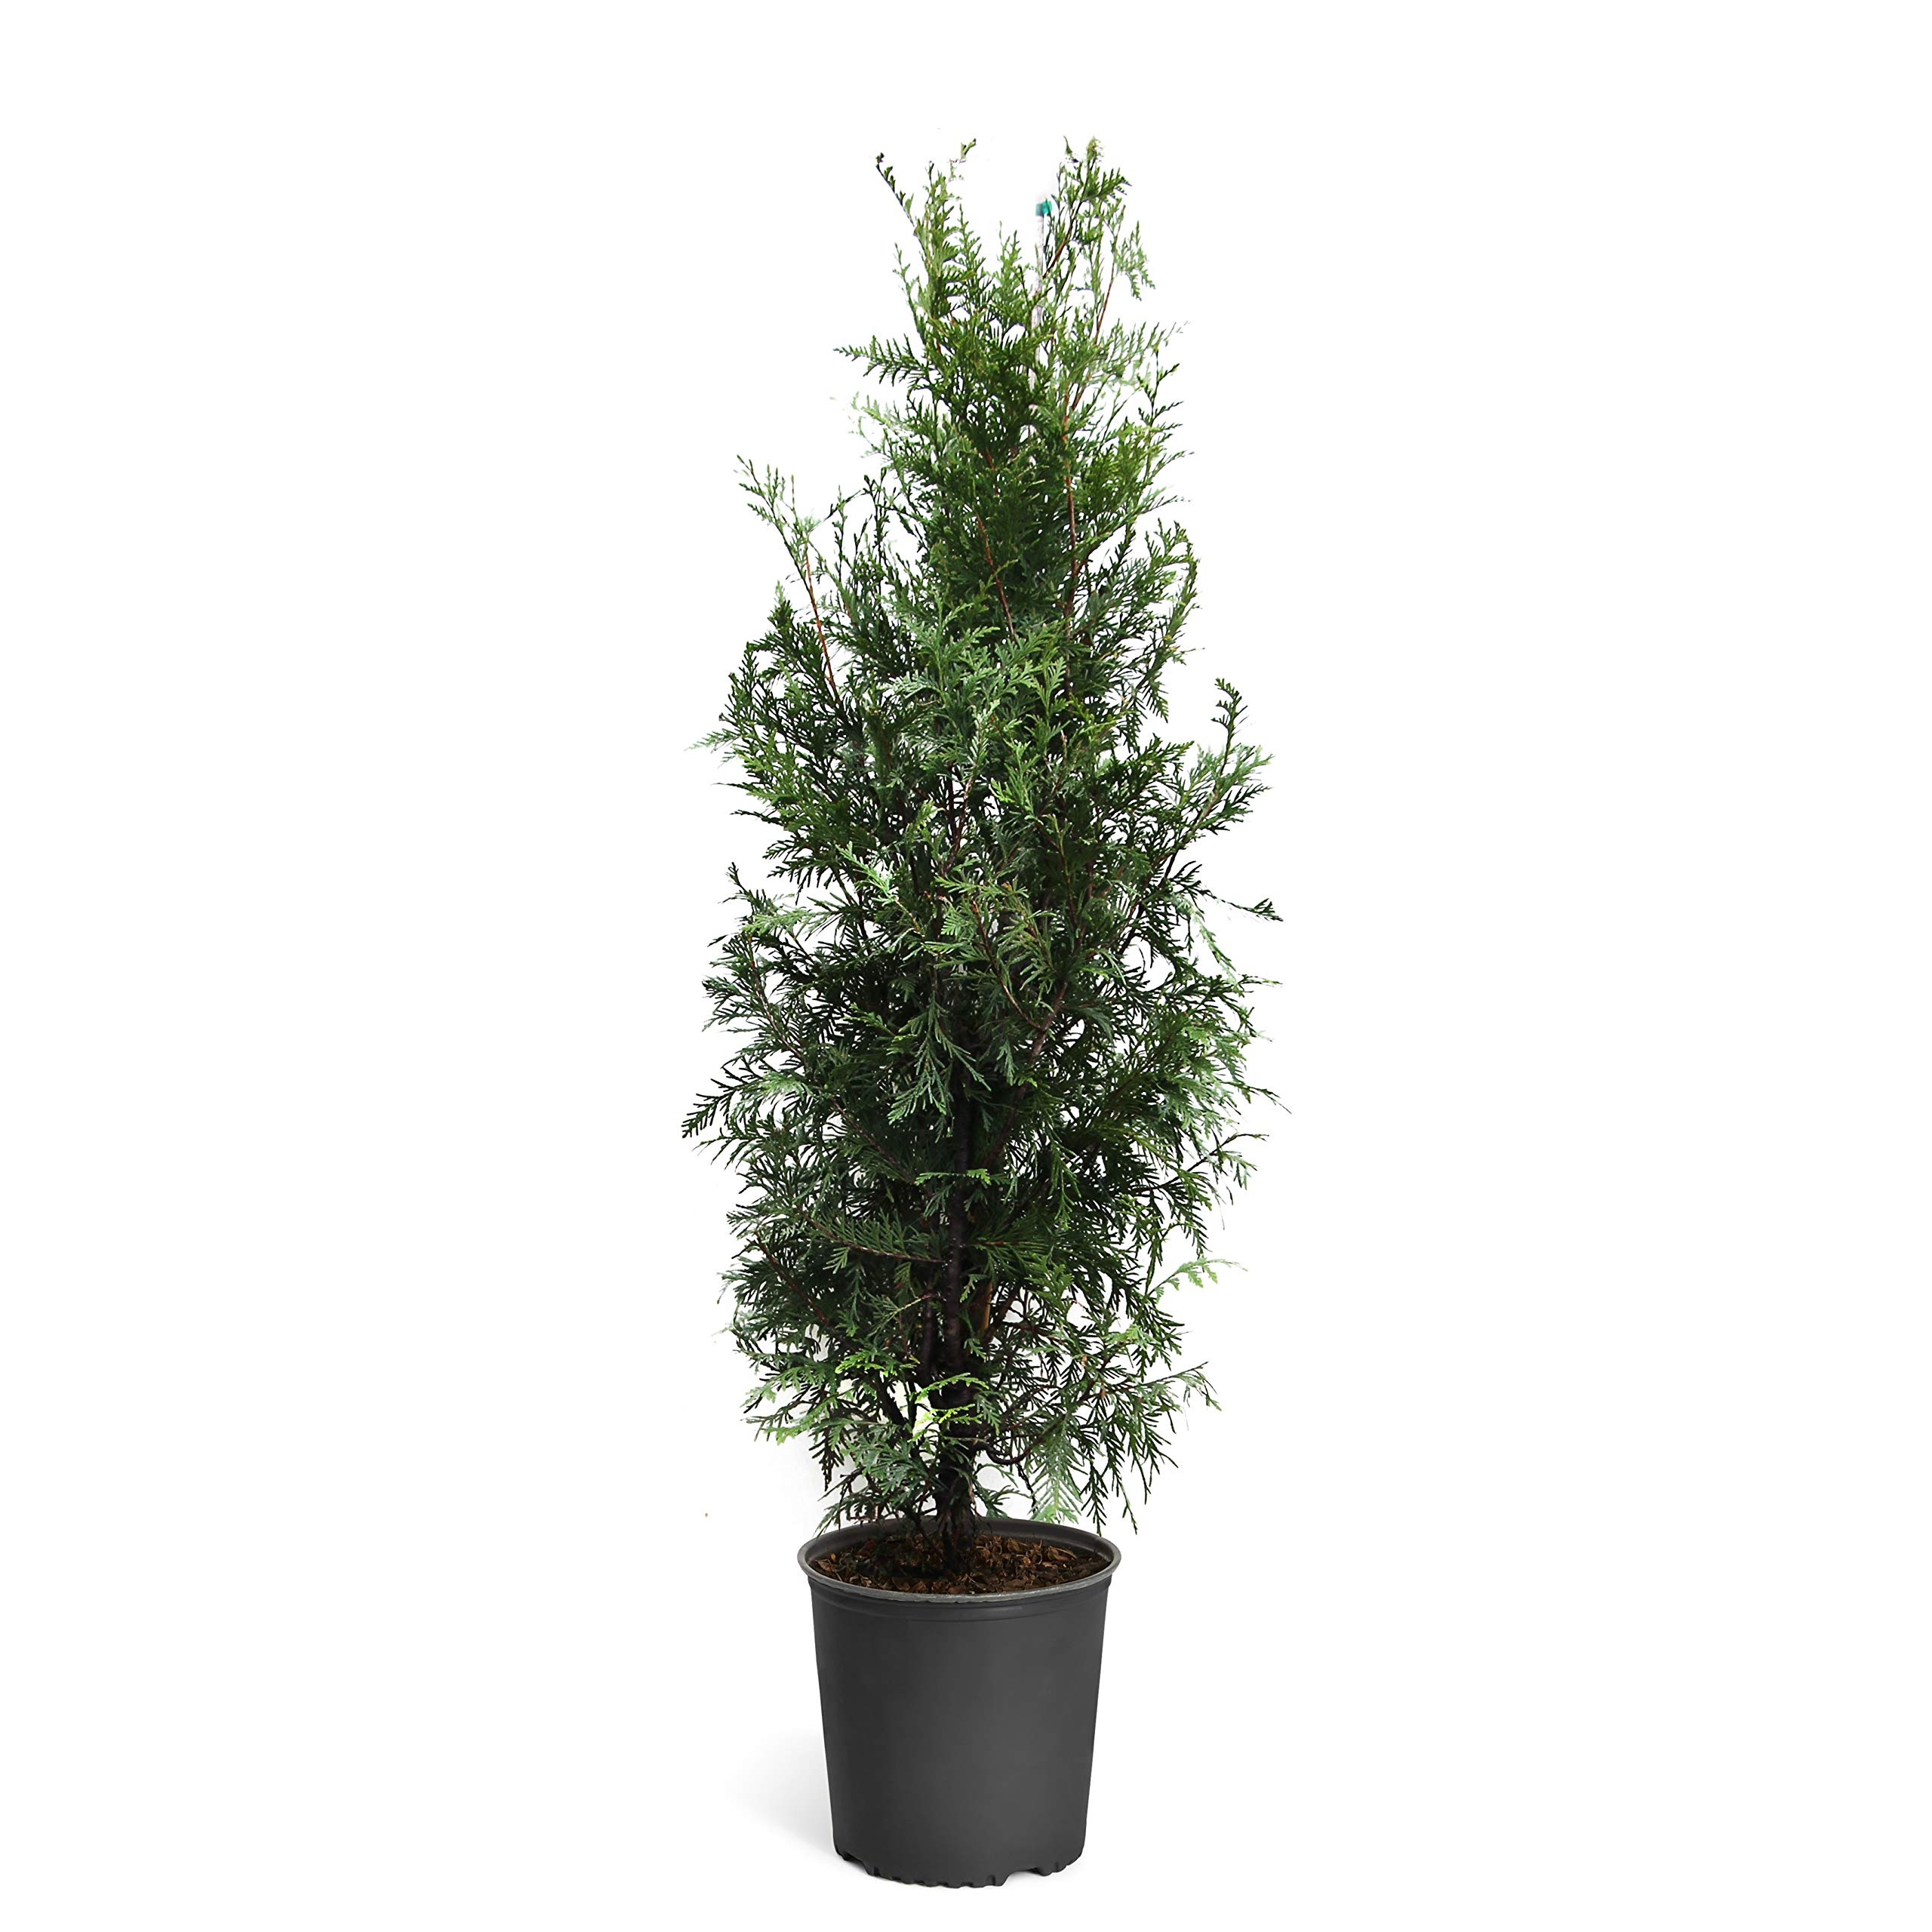 Thuja Green Giant Trees - 5-6 feet Tall - Large Evergreen Trees for Instant Privacy! - Oversize Arborvitae Thuja Green Giants by Brighter Blooms (Image #1)